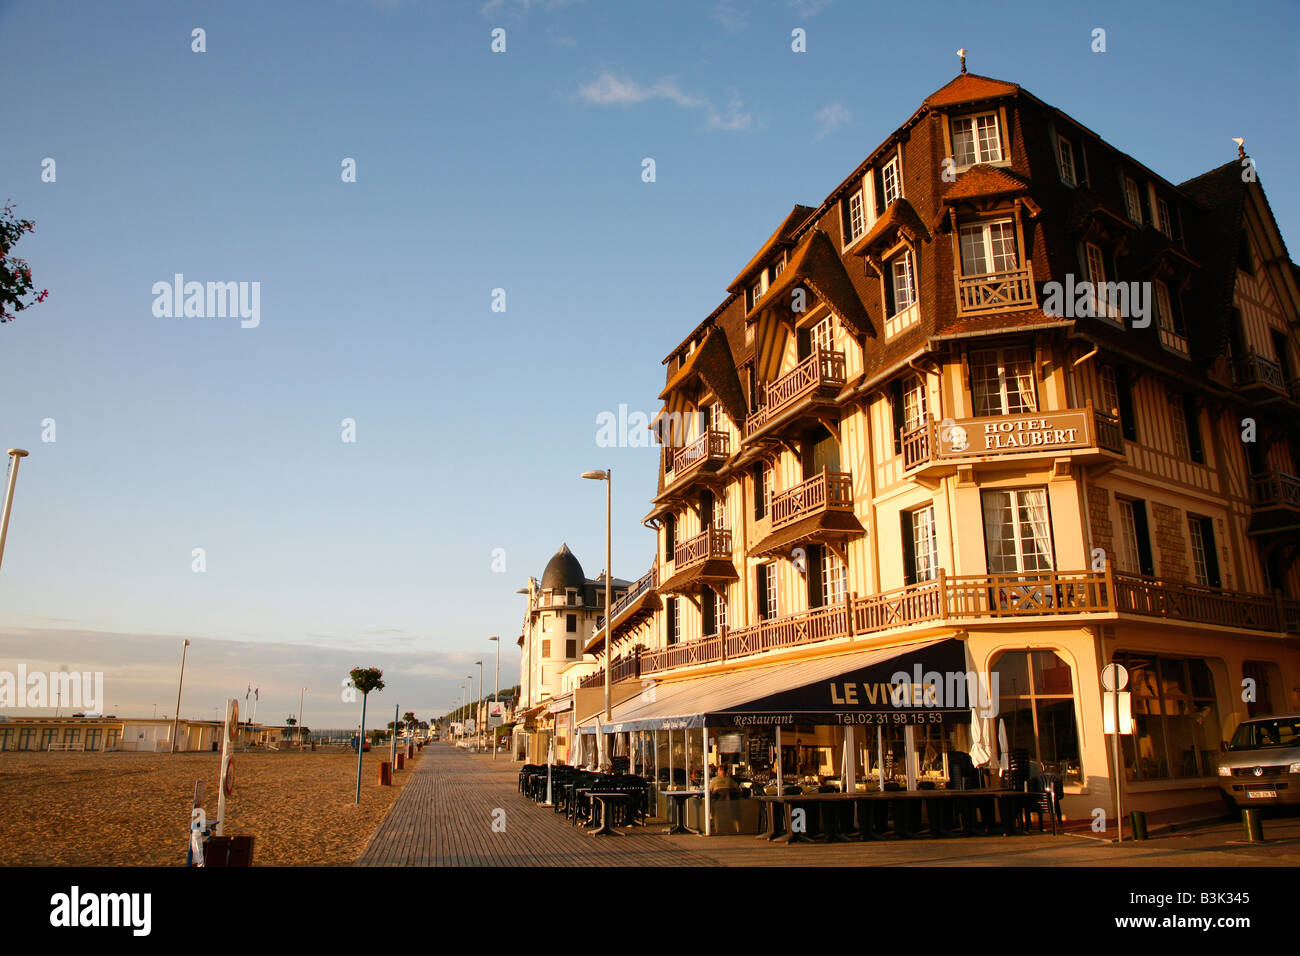 July 2008 - Sea side Trouville Normandy France - Stock Image